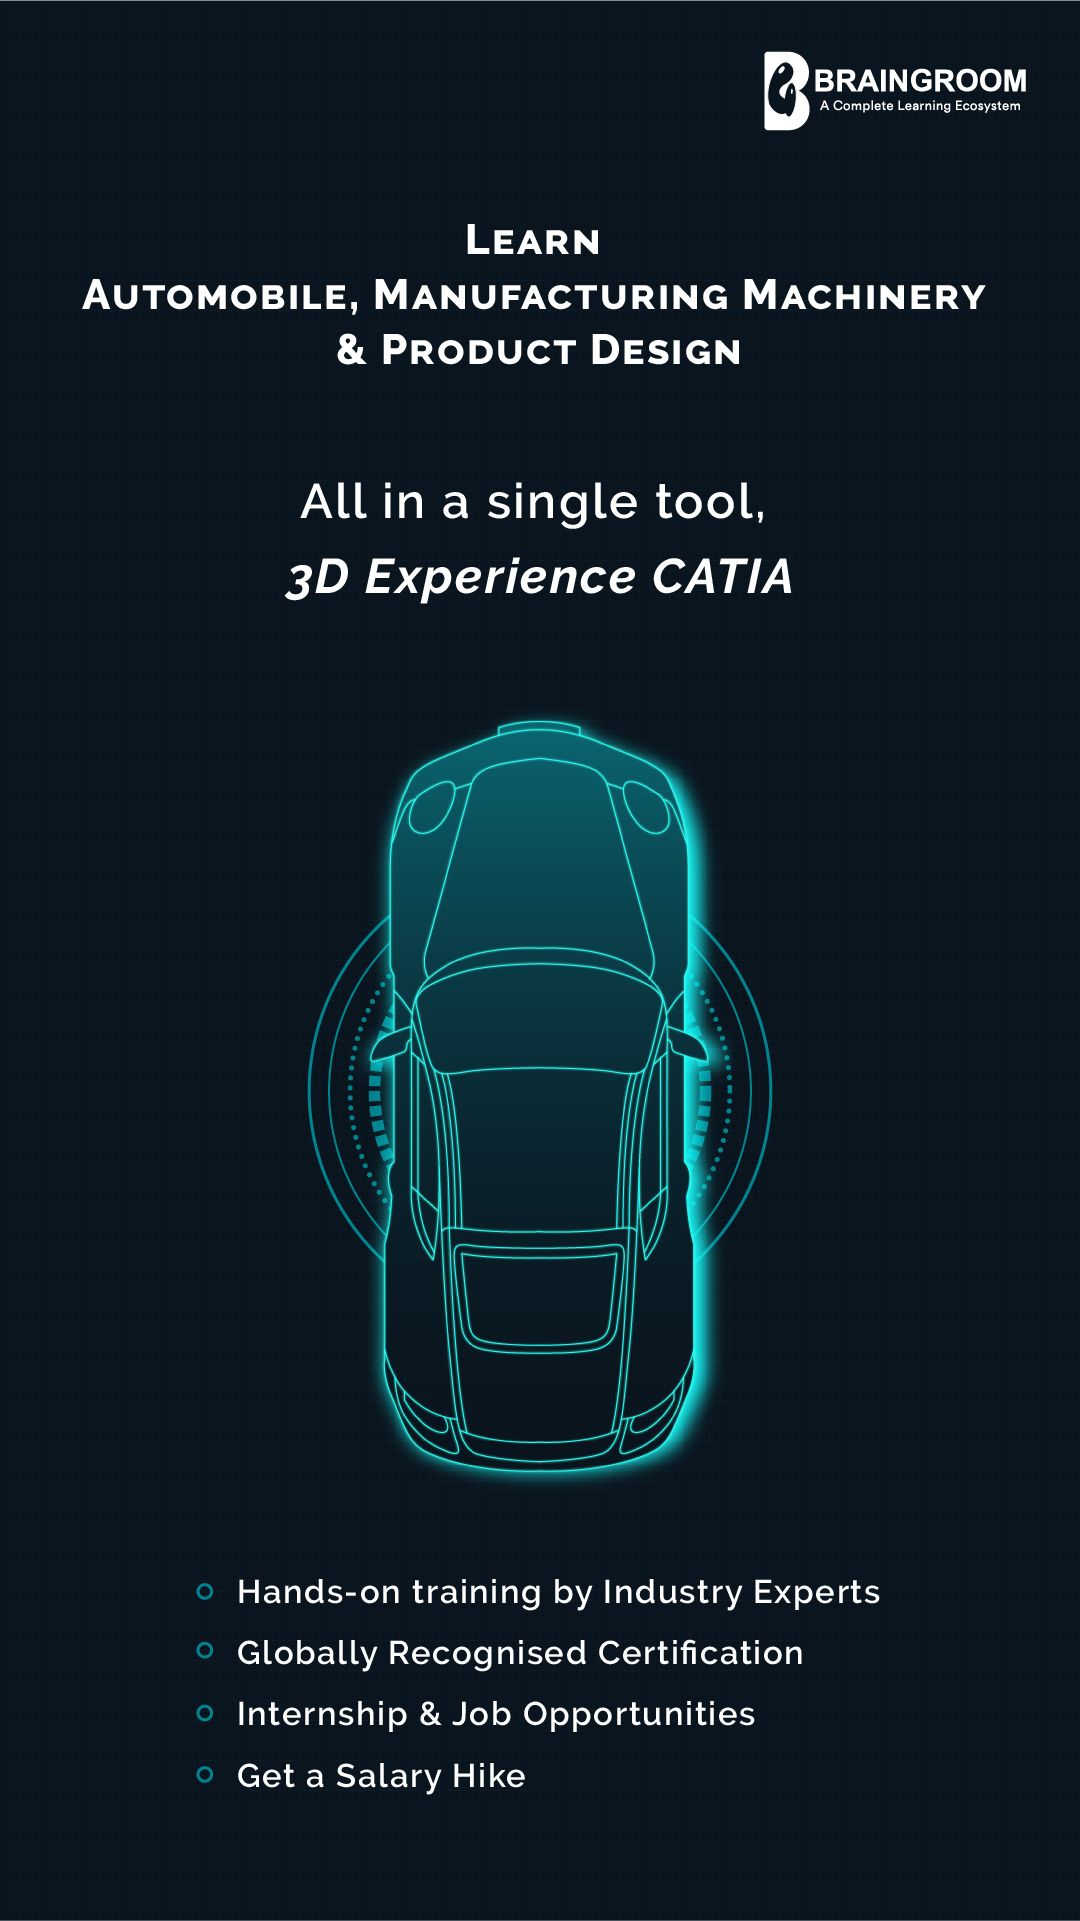 Catia is one of the highly demanded tools in the product